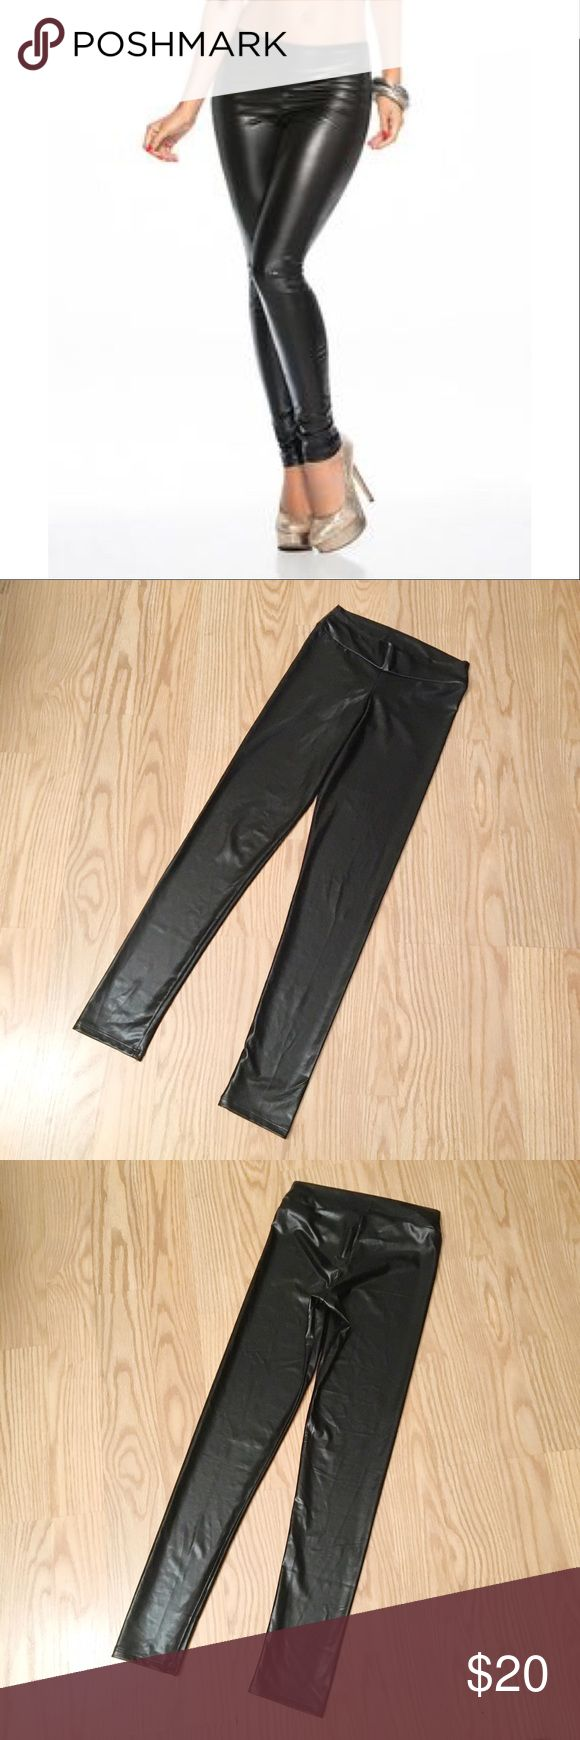 "NWOT AM PM ESPIRAL Wetlook leggings NWOT AM PM BY ESPIRAL black wetlook leggings | size S | inseam is 29"" espiral Pants Leggings"